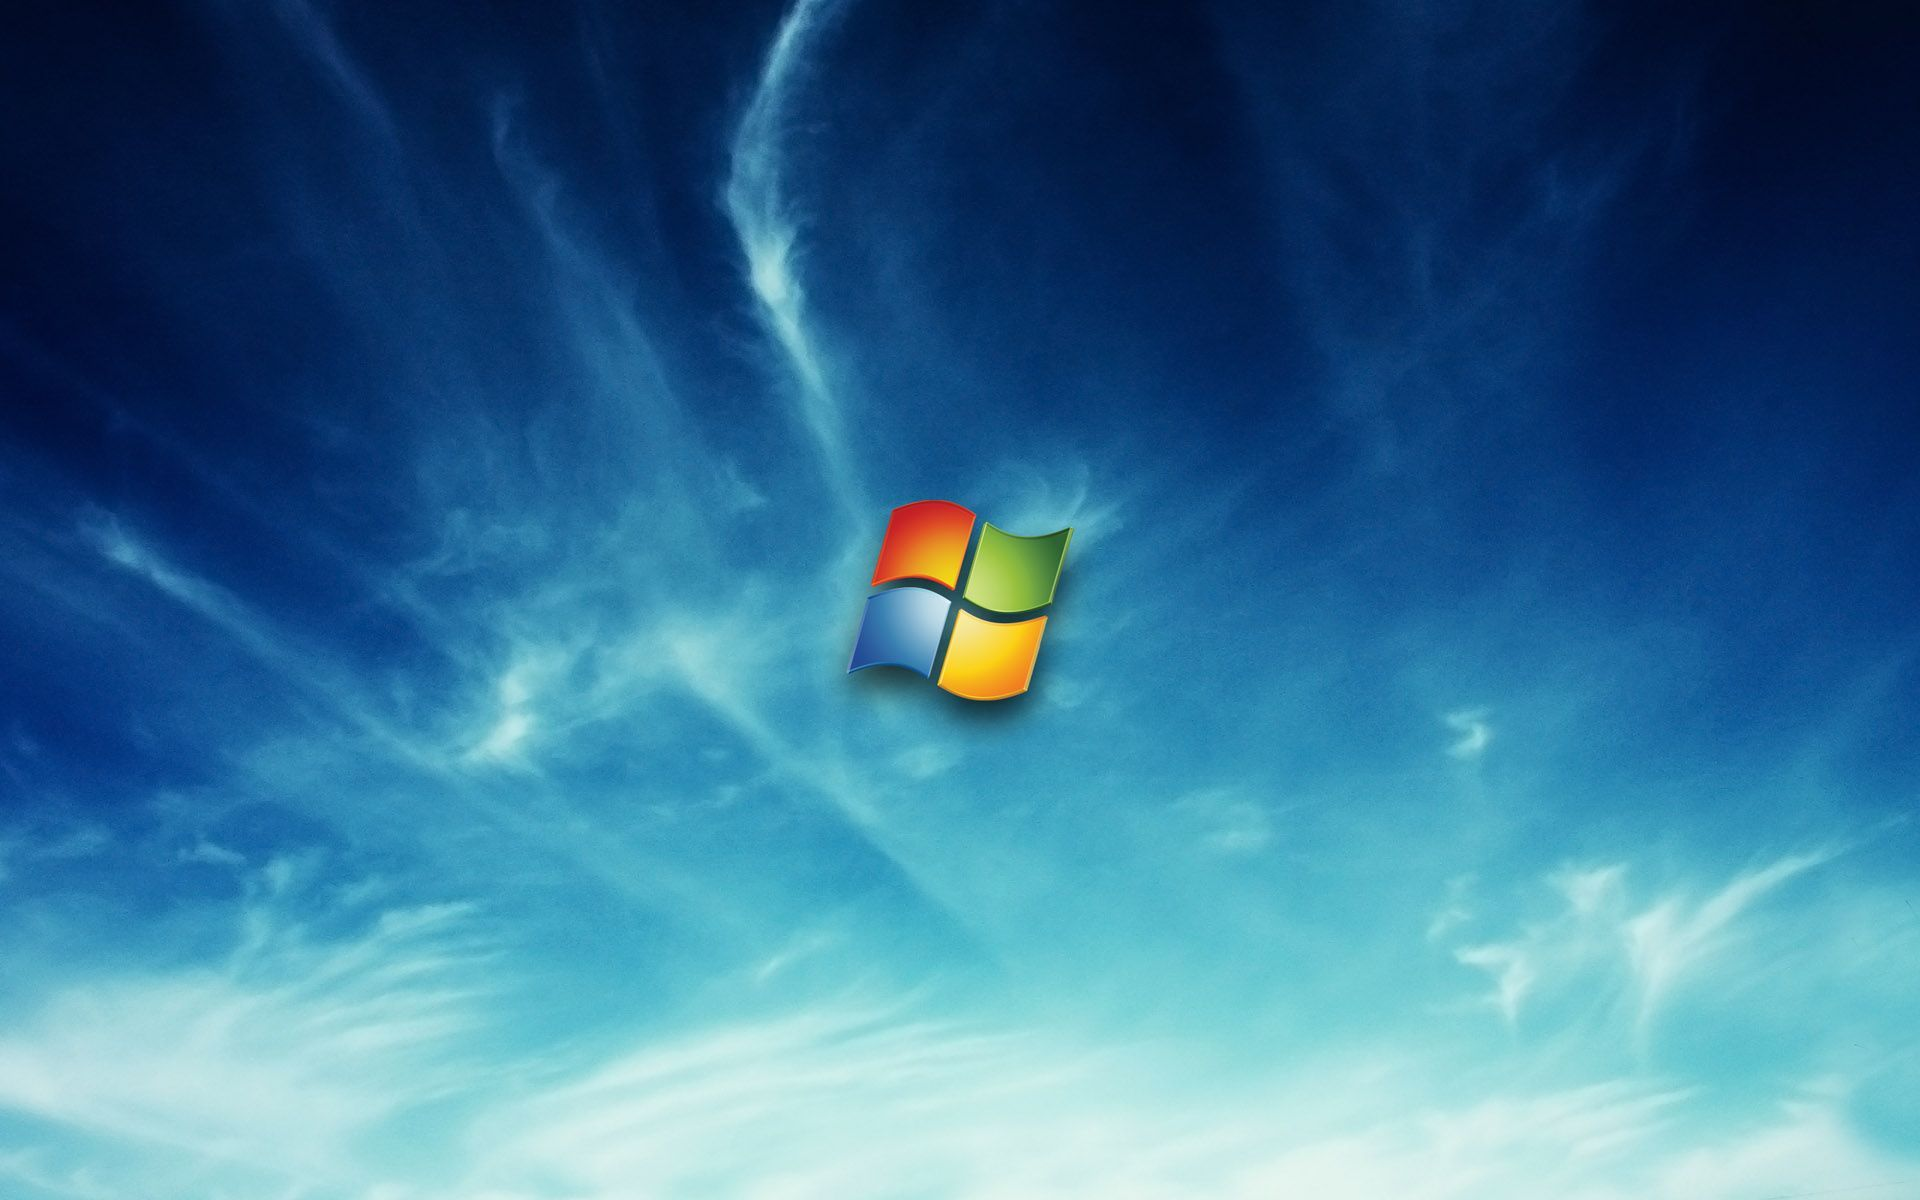 Here Is Default Wallpaper For Windows Final Release 1920x1080 8 Original Wallpapers 48